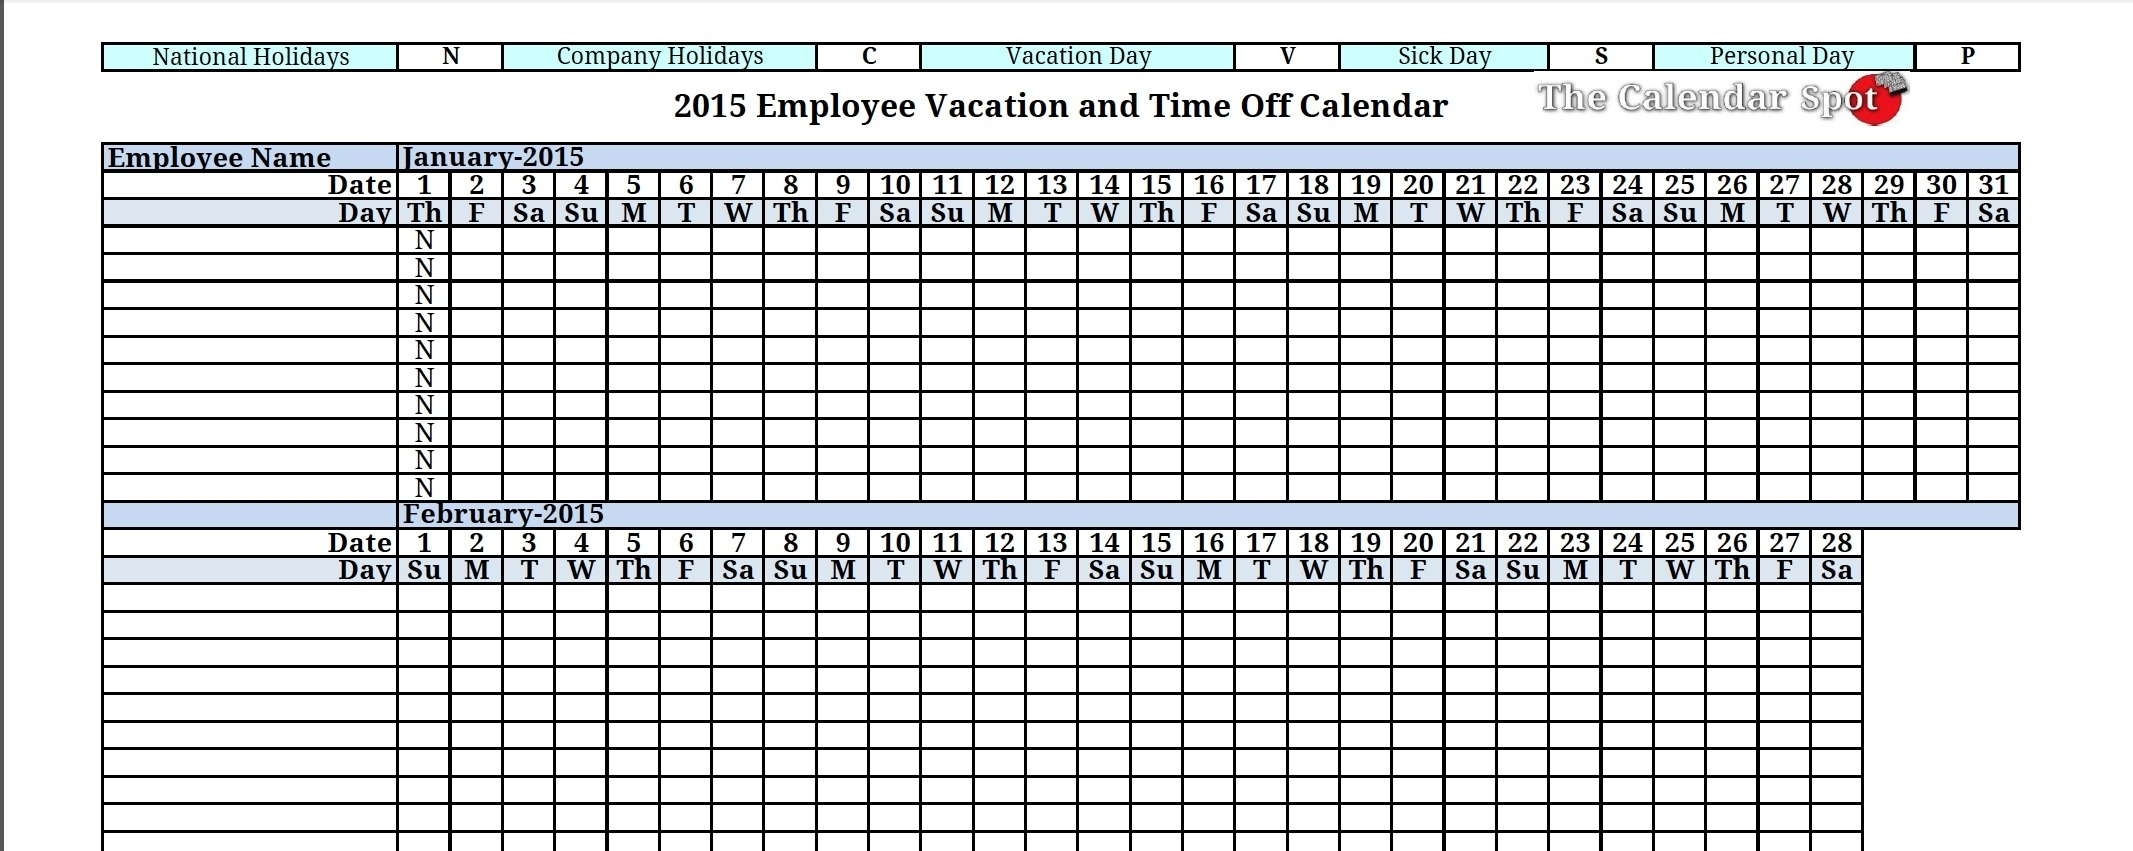 004 Employee Tracking Template Ideas Vacation Calendar Excellent pertaining to Downloadable Employee Vacation Calendar 2015